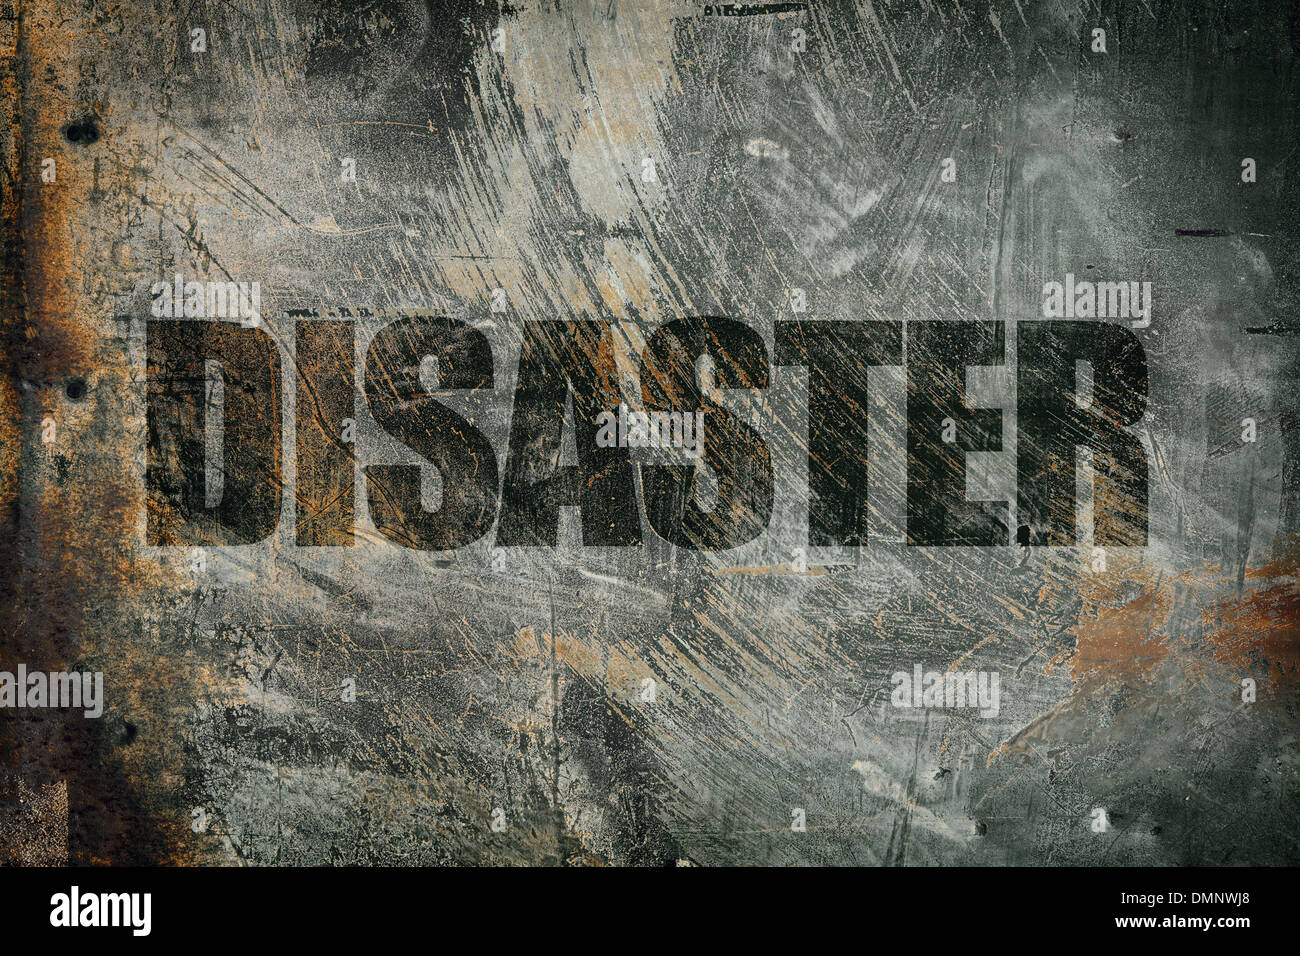 disaster - Stock Image